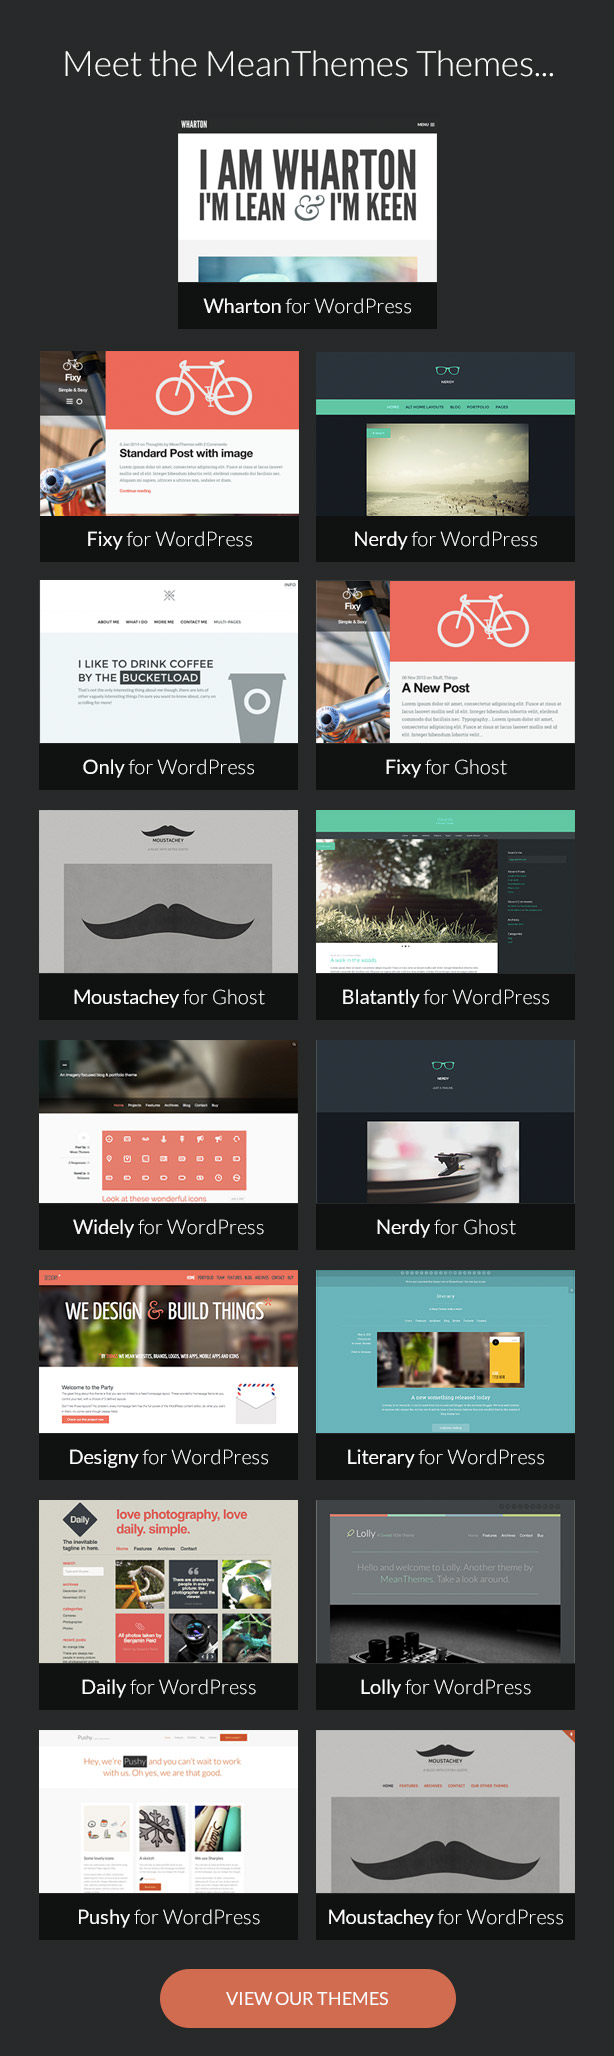 Meet The MeanThemes Themes...